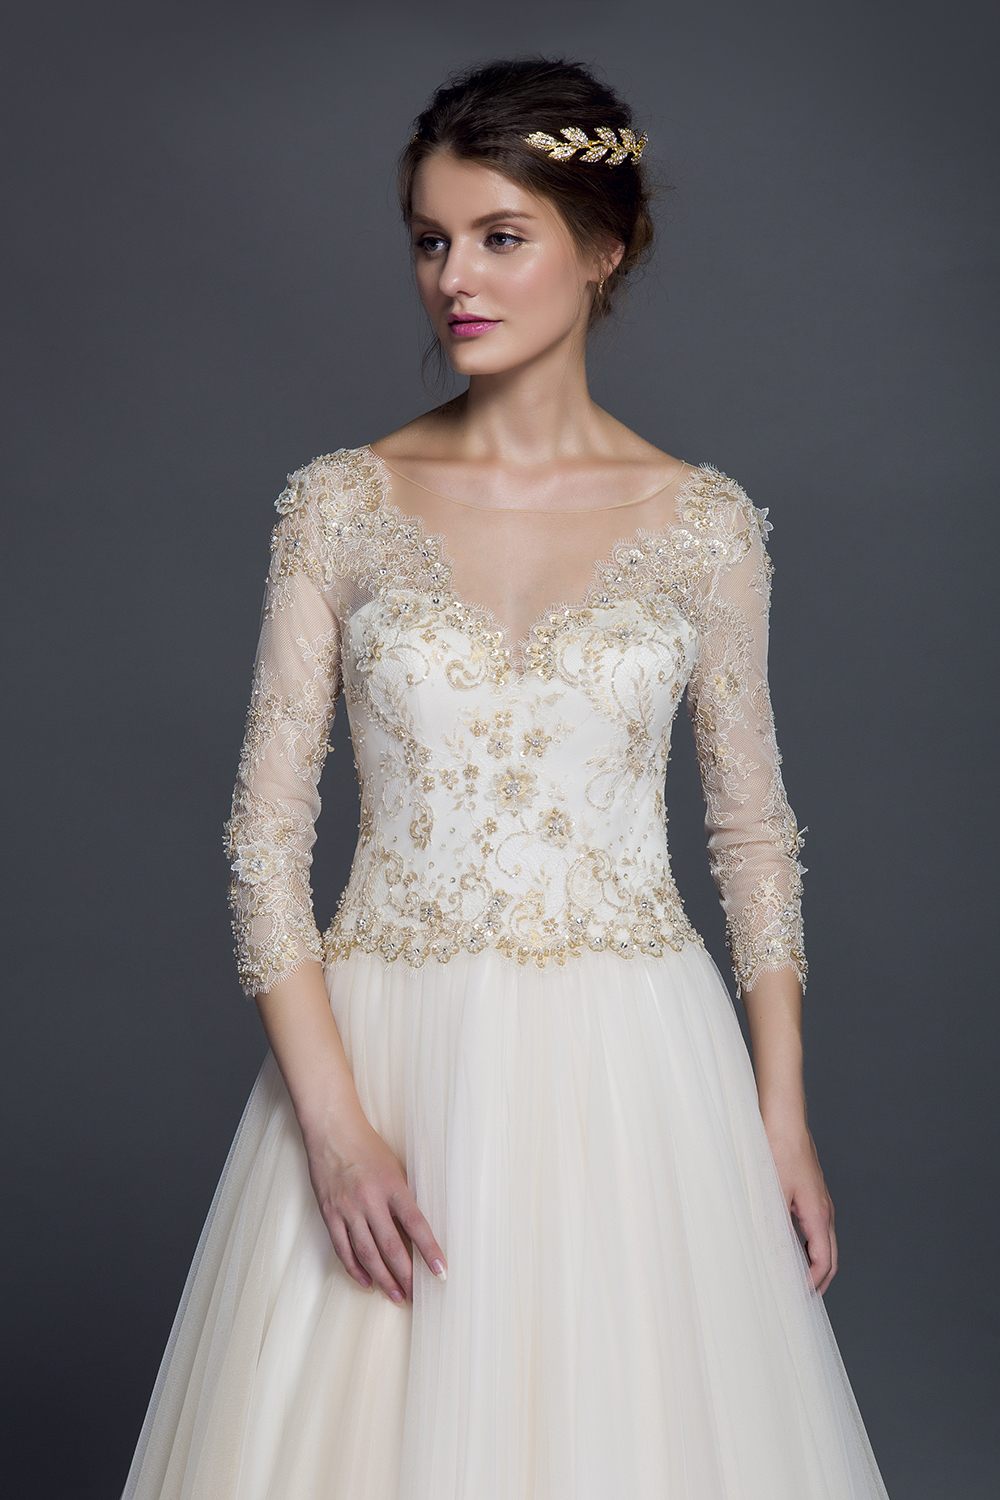 Stunning Winter Wedding Dresses : Stunning champagne lace appliqued ball gown winter wedding dress